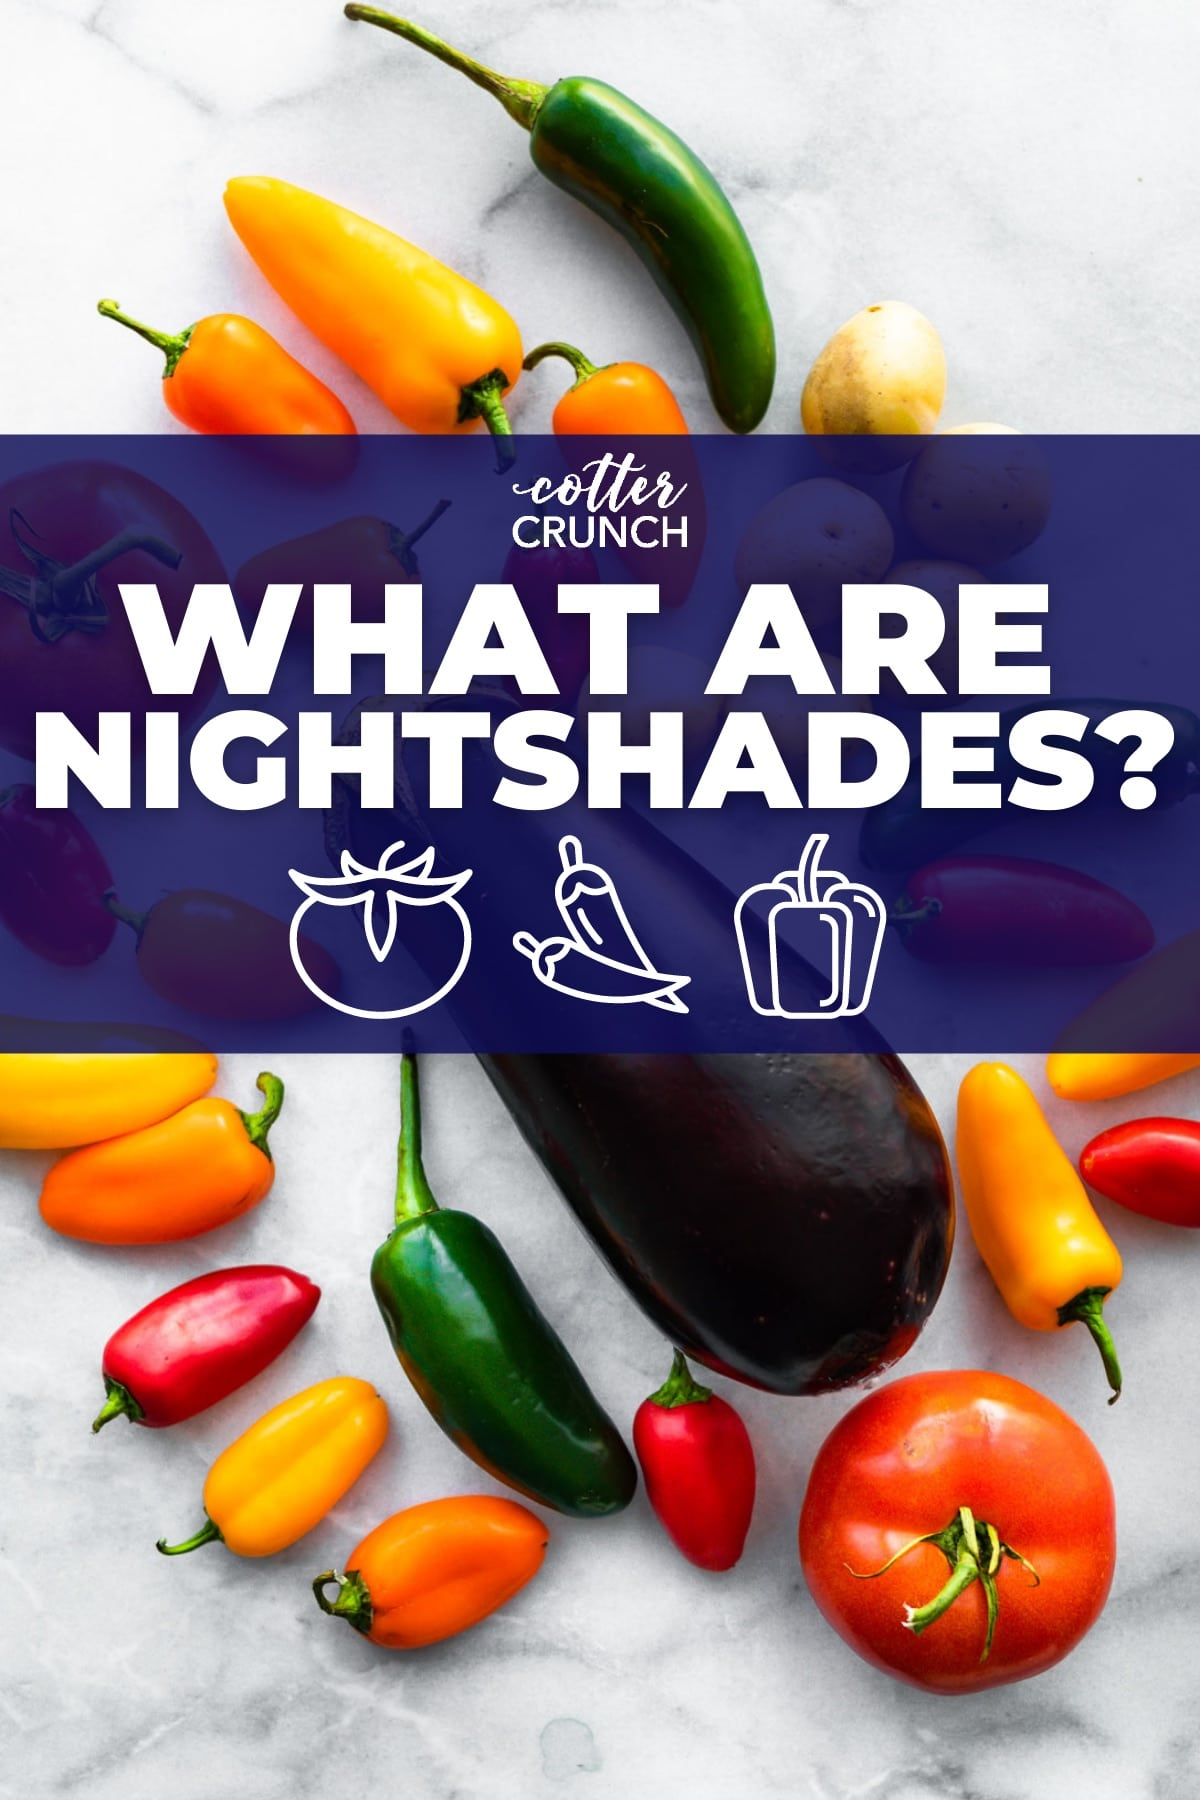 titled image of nightshade vegetables: What Are Nightshades?